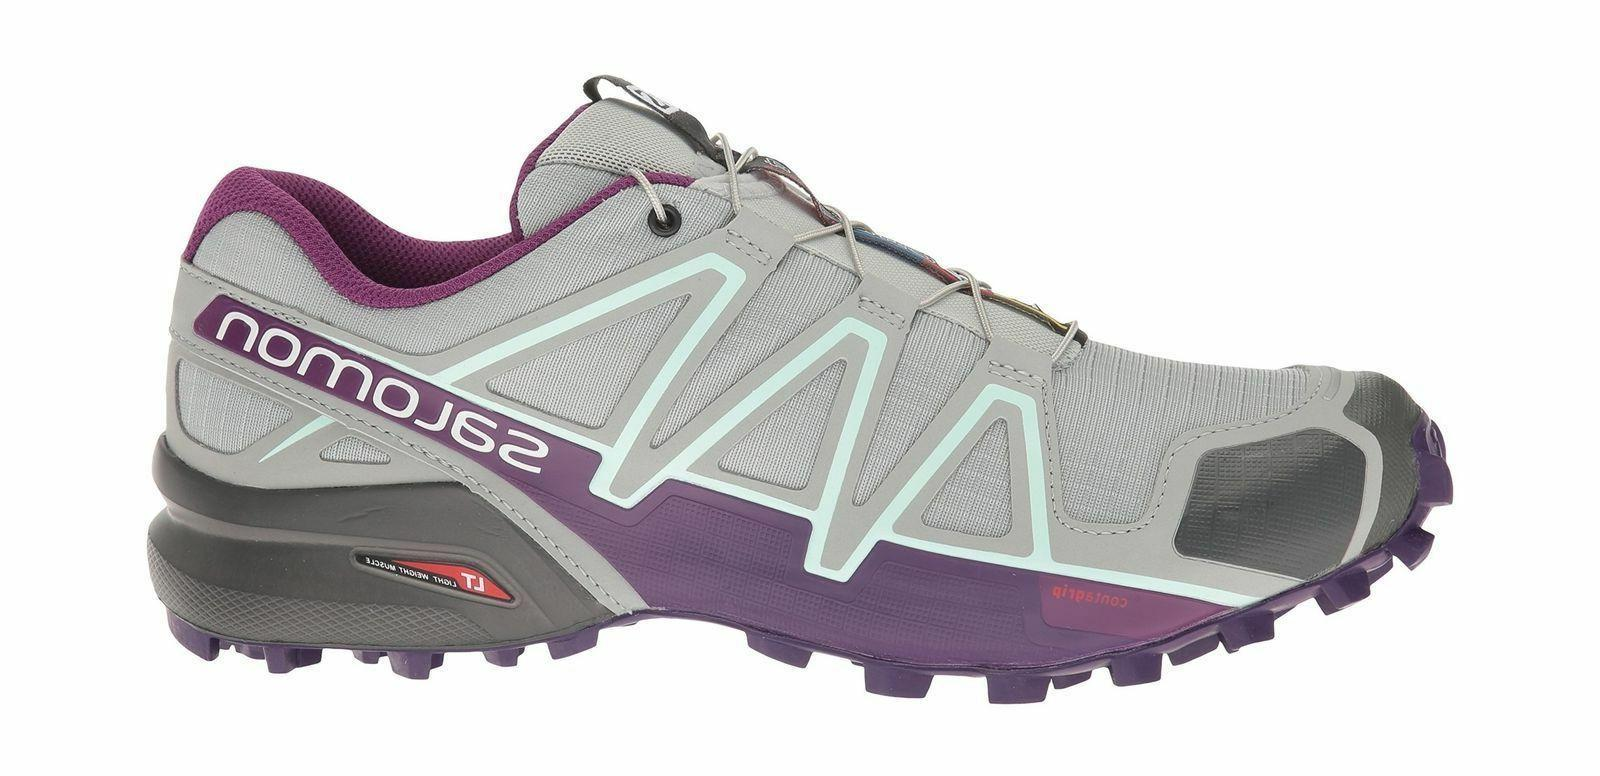 NEW WOMEN'S SPEEDCROSS 4 TRAIL BATTLEFIELD - VARIOUS SIZE